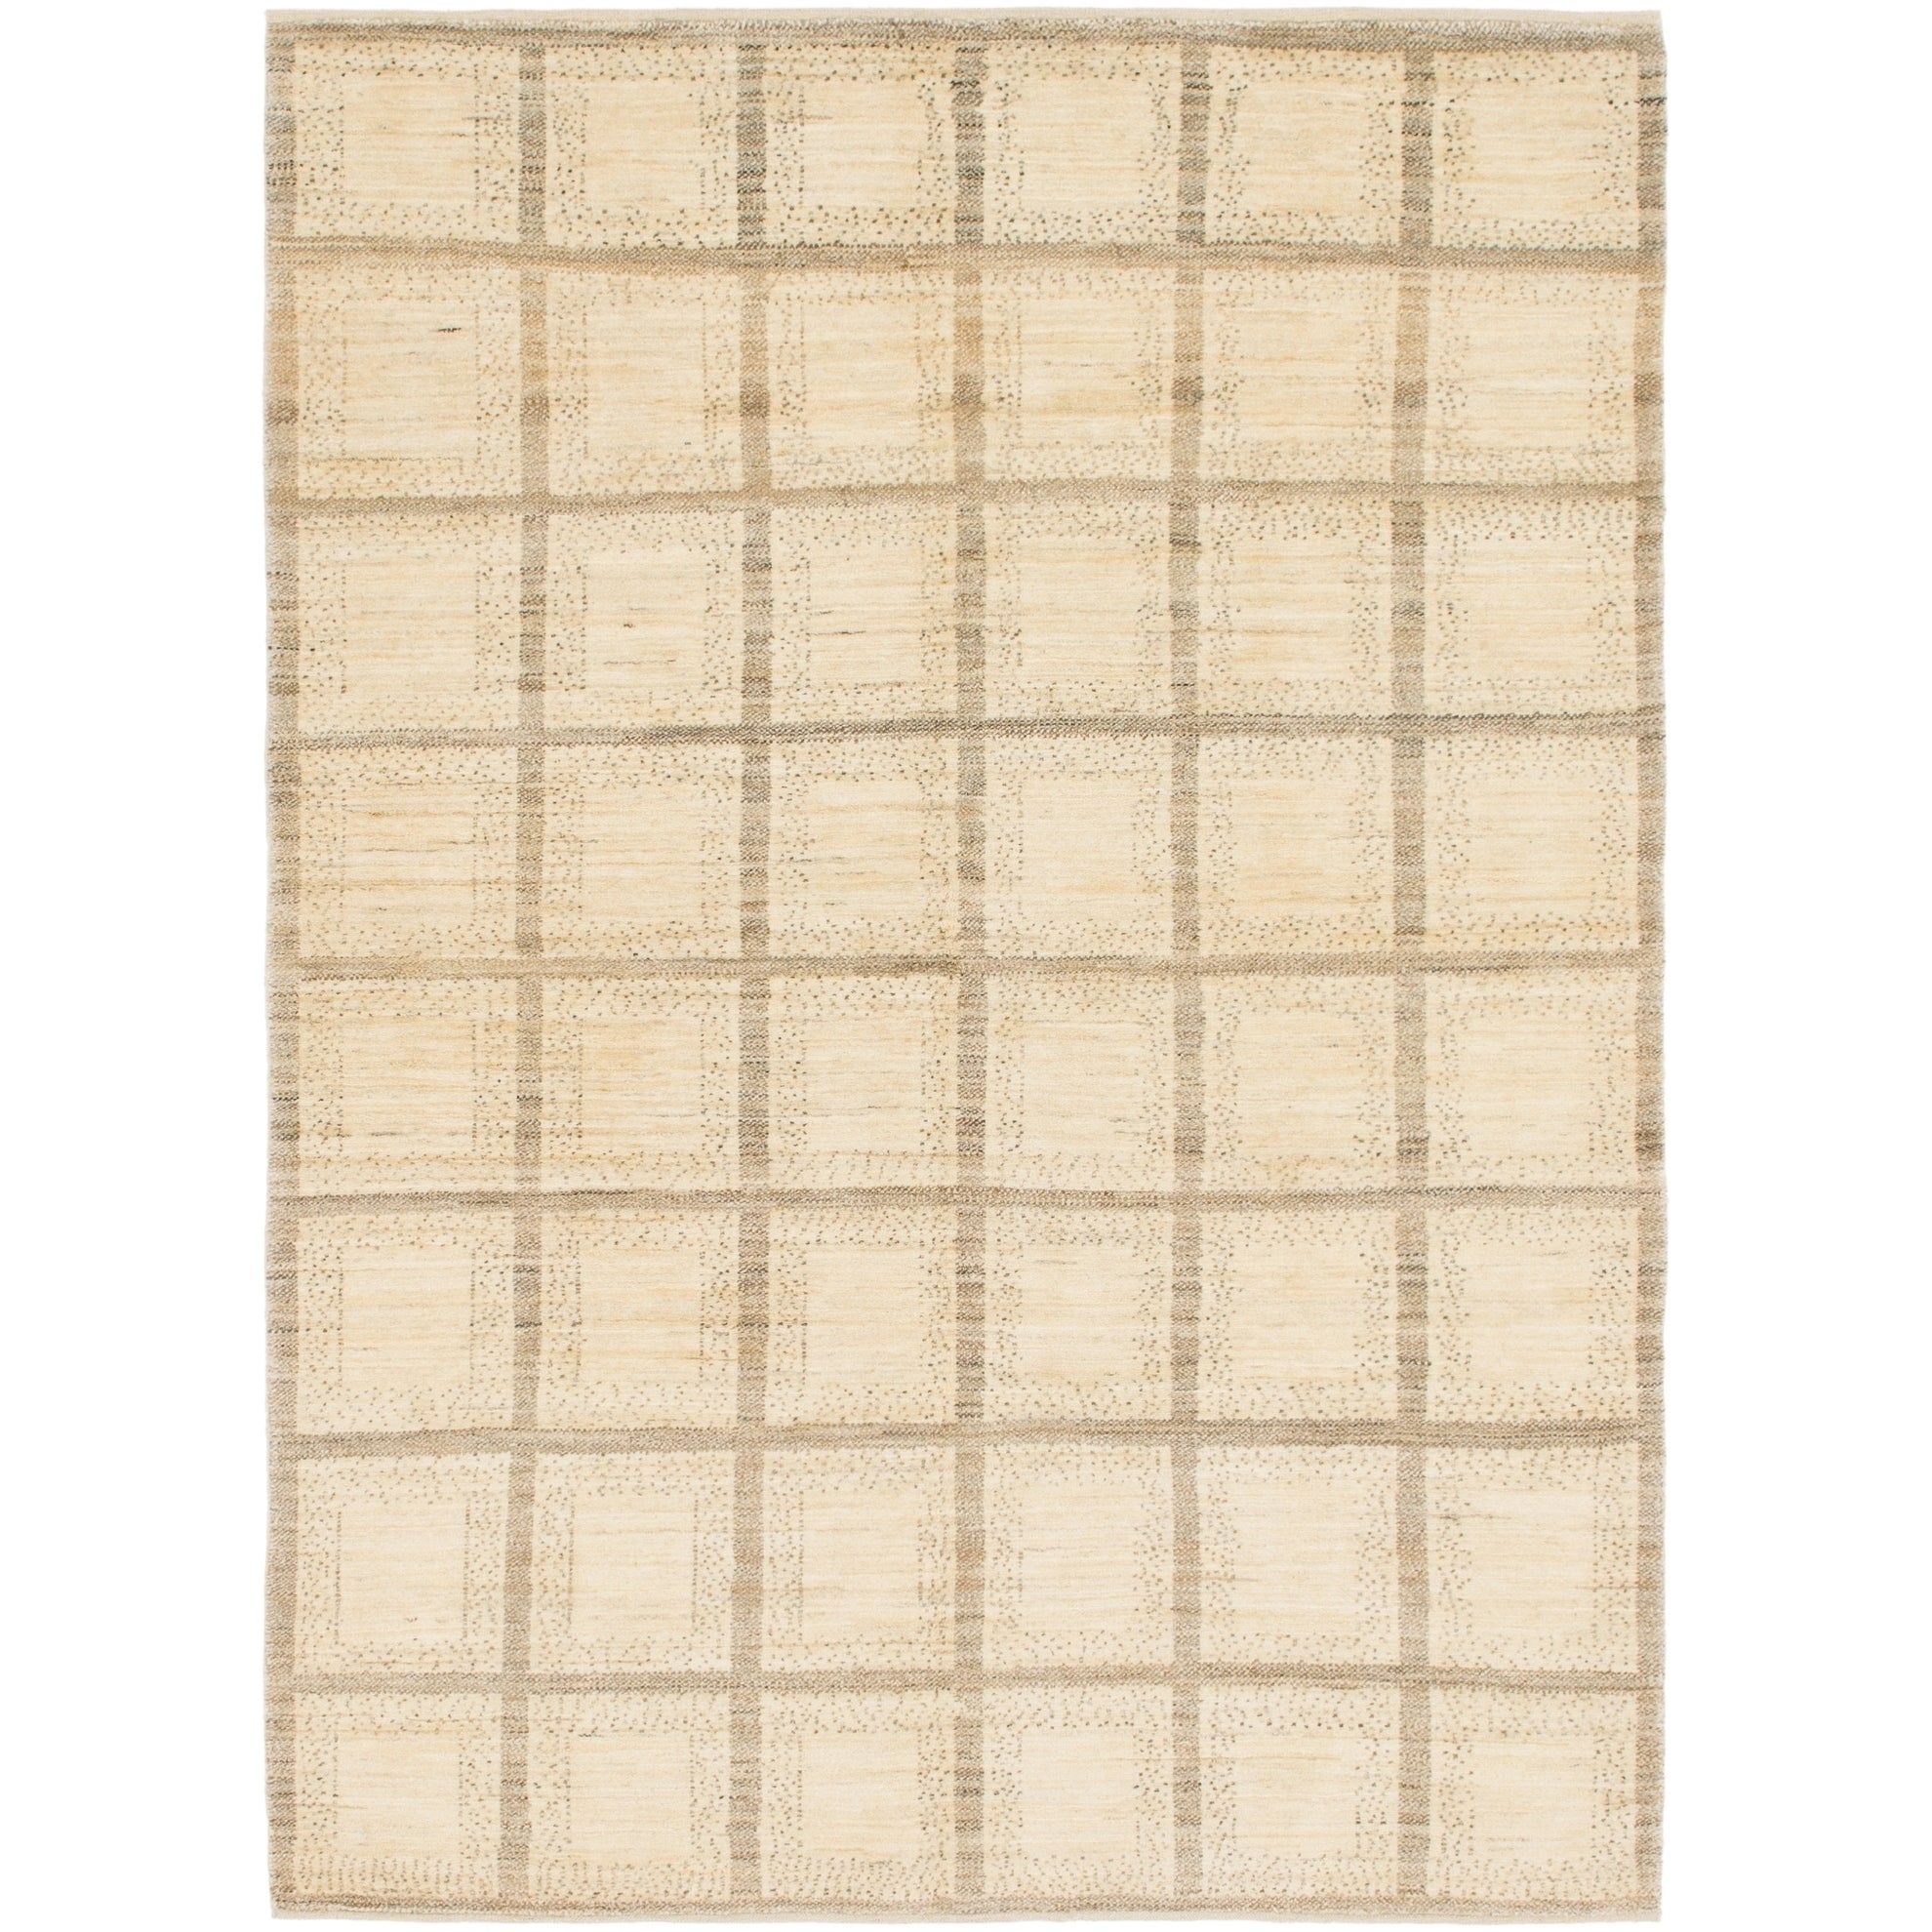 Hand Knotted Kashkuli Gabbeh Wool Area Rug - 5 9 x 8 (Cream - 5 9 x 8)